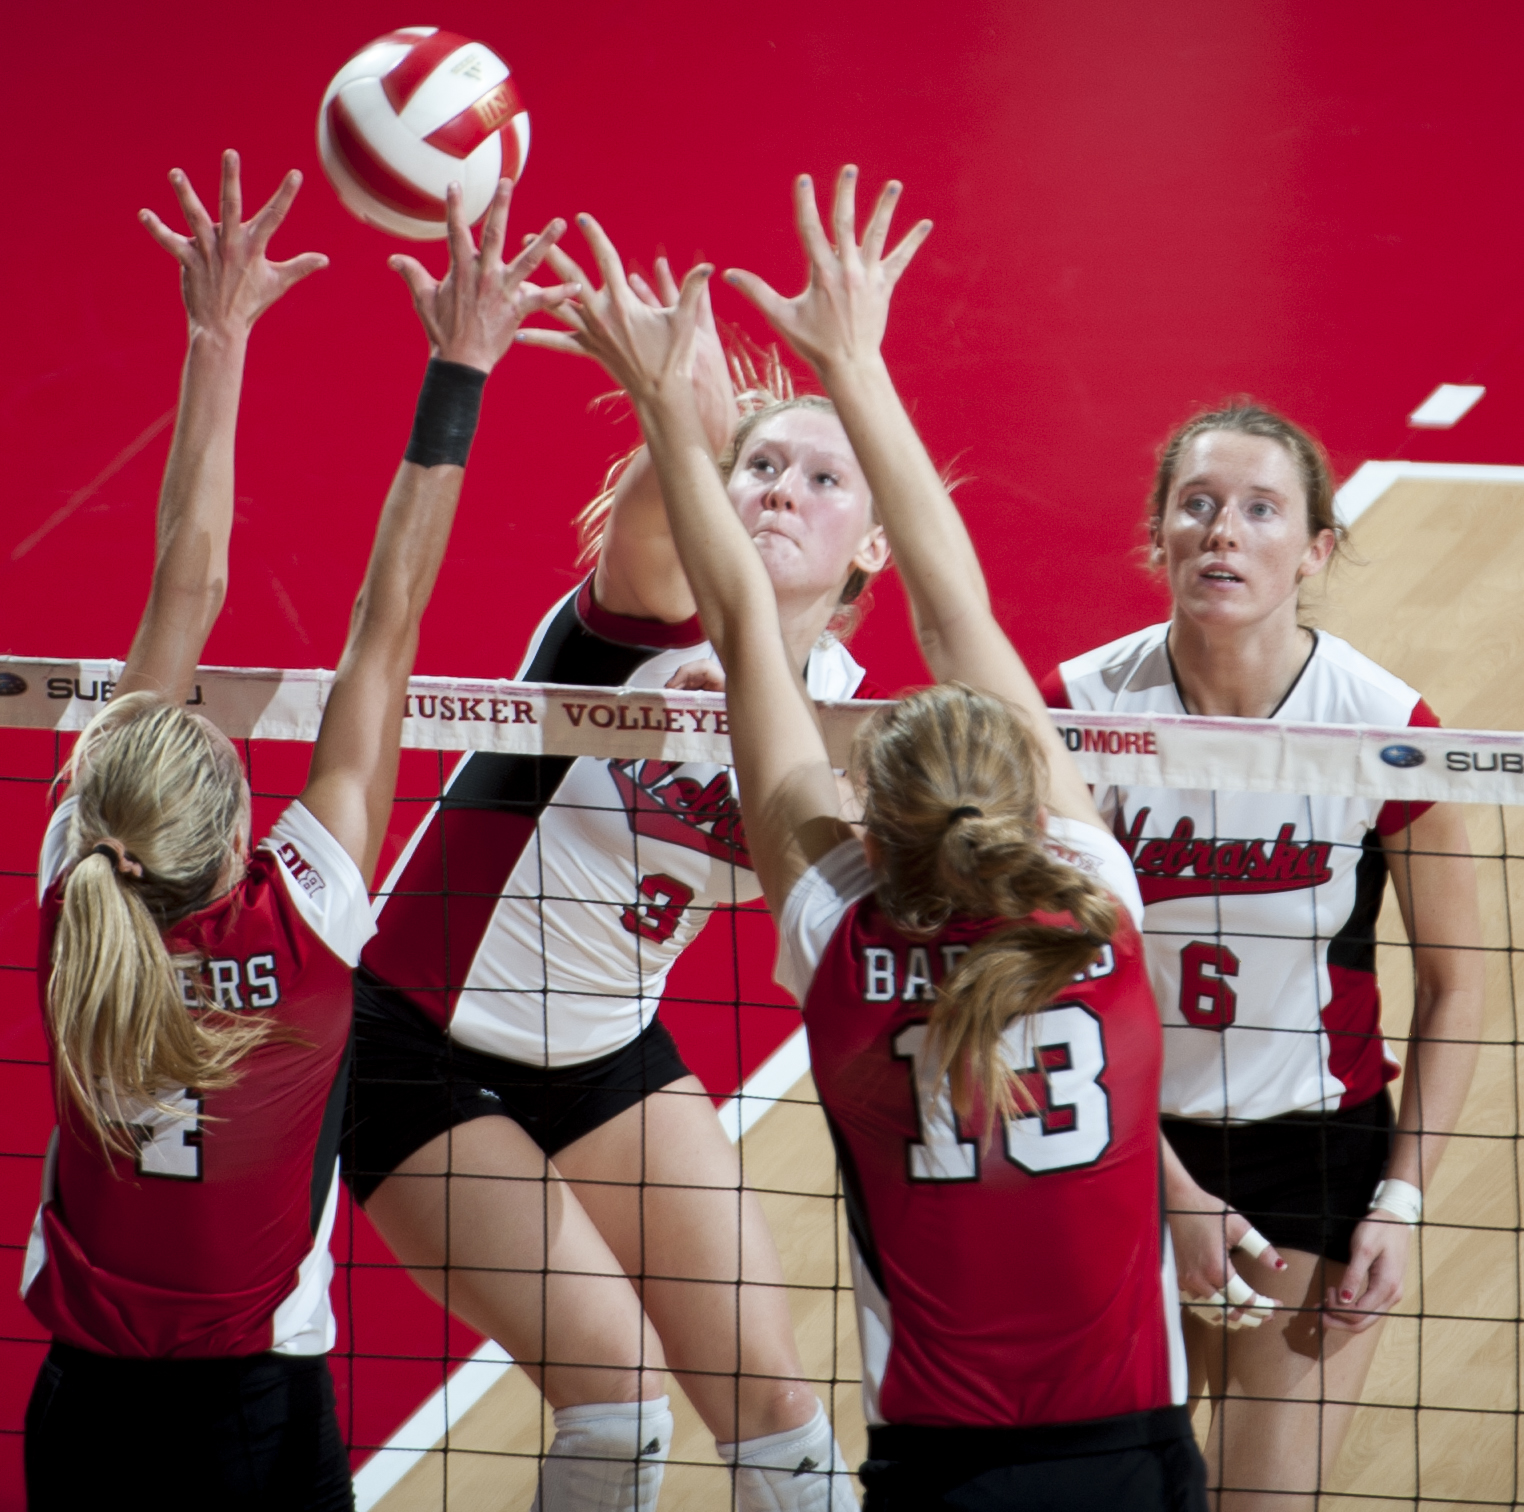 Nebraska's Kelly Hunter (3) spikes the ball against Wisconsin's Kelli Bates (4) and Haleigh Nelson (13) in the fourth set of action at Devaney Sports Center in Lincoln Saturday Oct. 24, 2015. The Huskers would win the first set of the match but then lose three straight. Losing the match three sets to one.